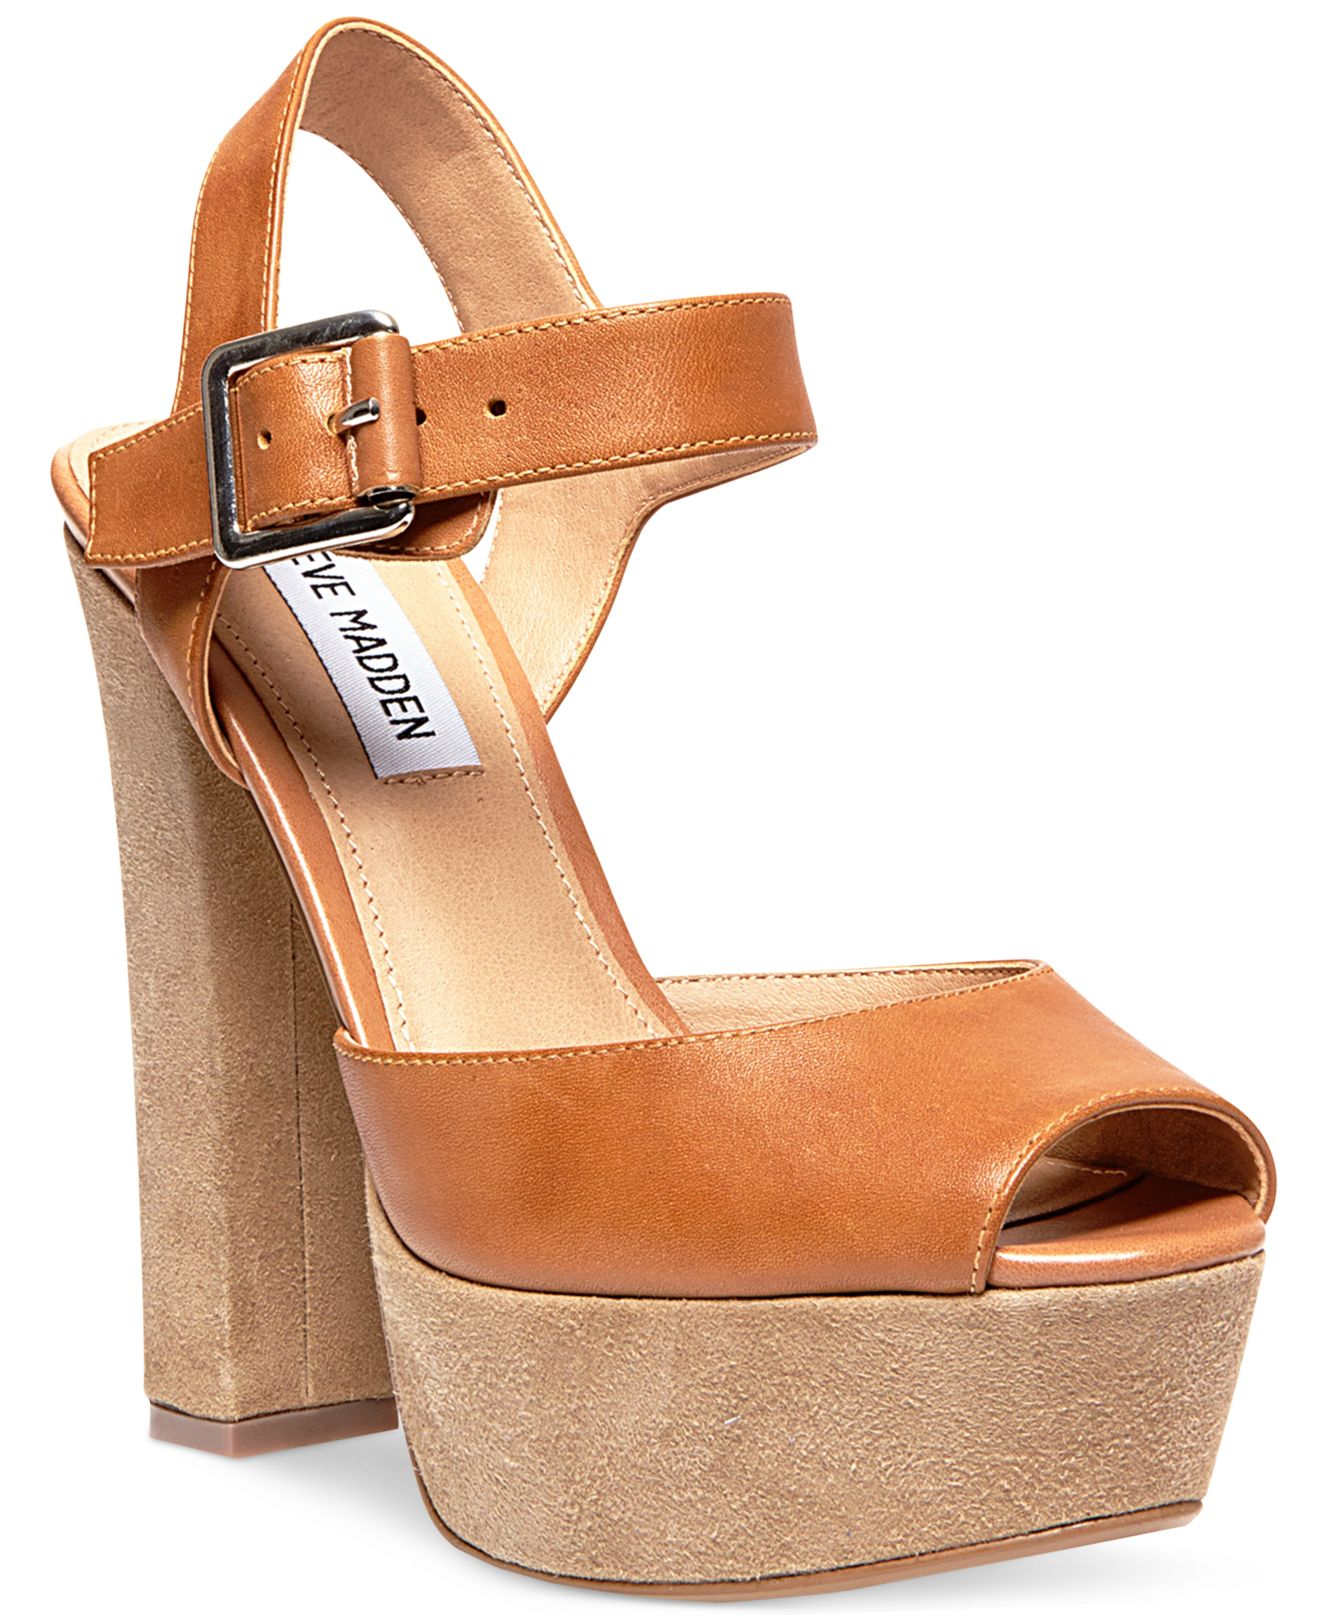 c62e771984e Lyst - Steve Madden Jillyy Two-piece Platform Sandals in Brown